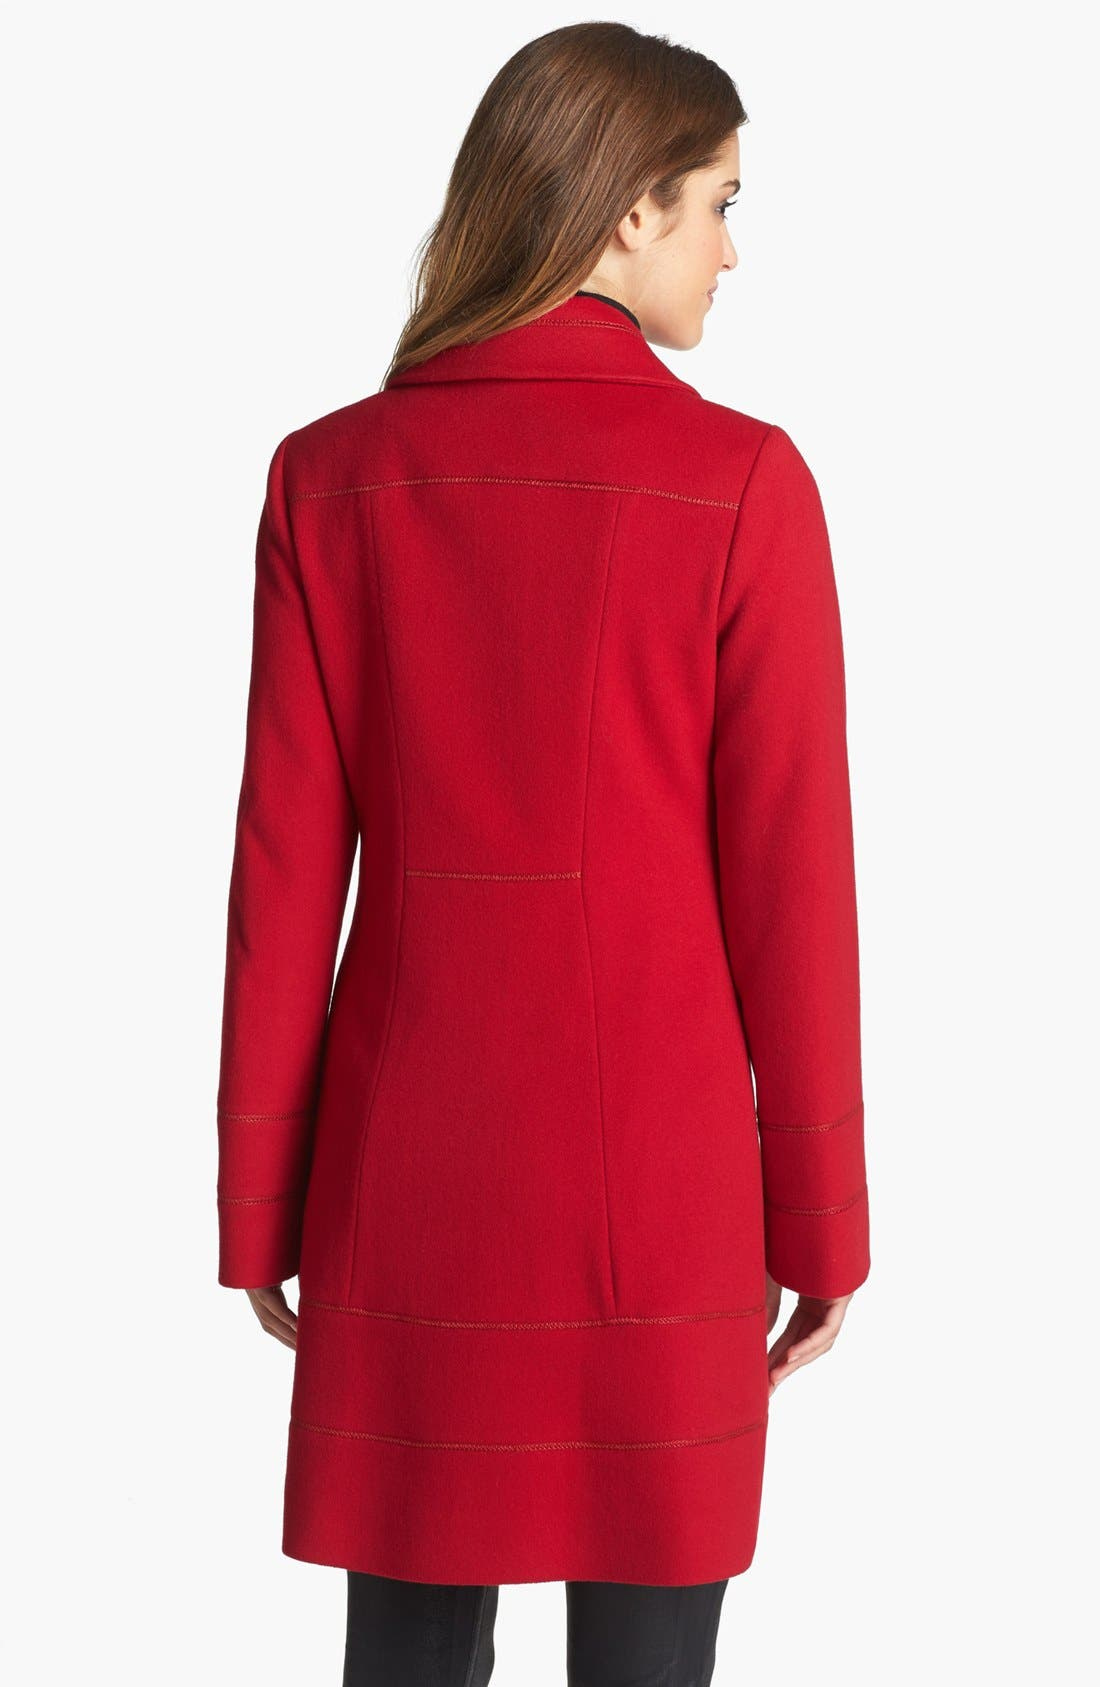 Alternate Image 2  - Fleurette Stitch Trim Loro Piana Wool Coat (Petite)